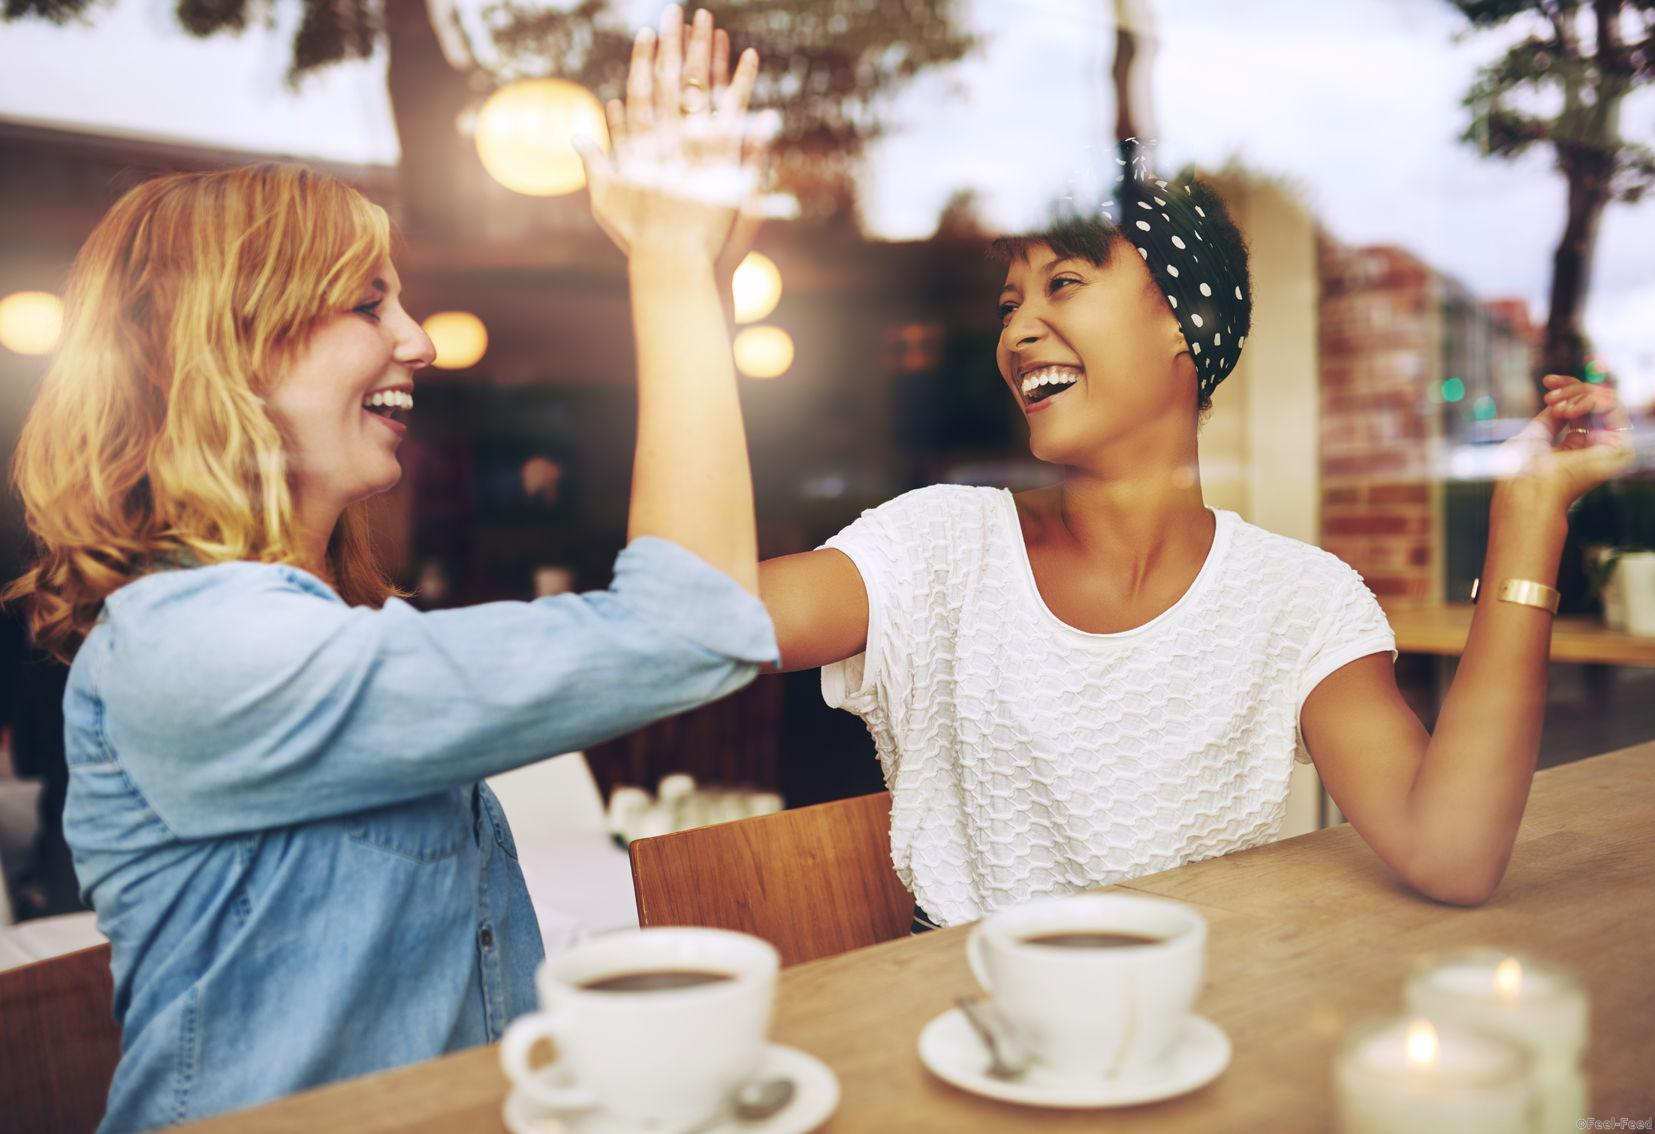 46416660 - happy exuberant young girl friends giving a high five slapping each others hand in congratulations as they sit together in a cafeteria enjoying a cup of hot coffee, multi ethnic viewed through glass